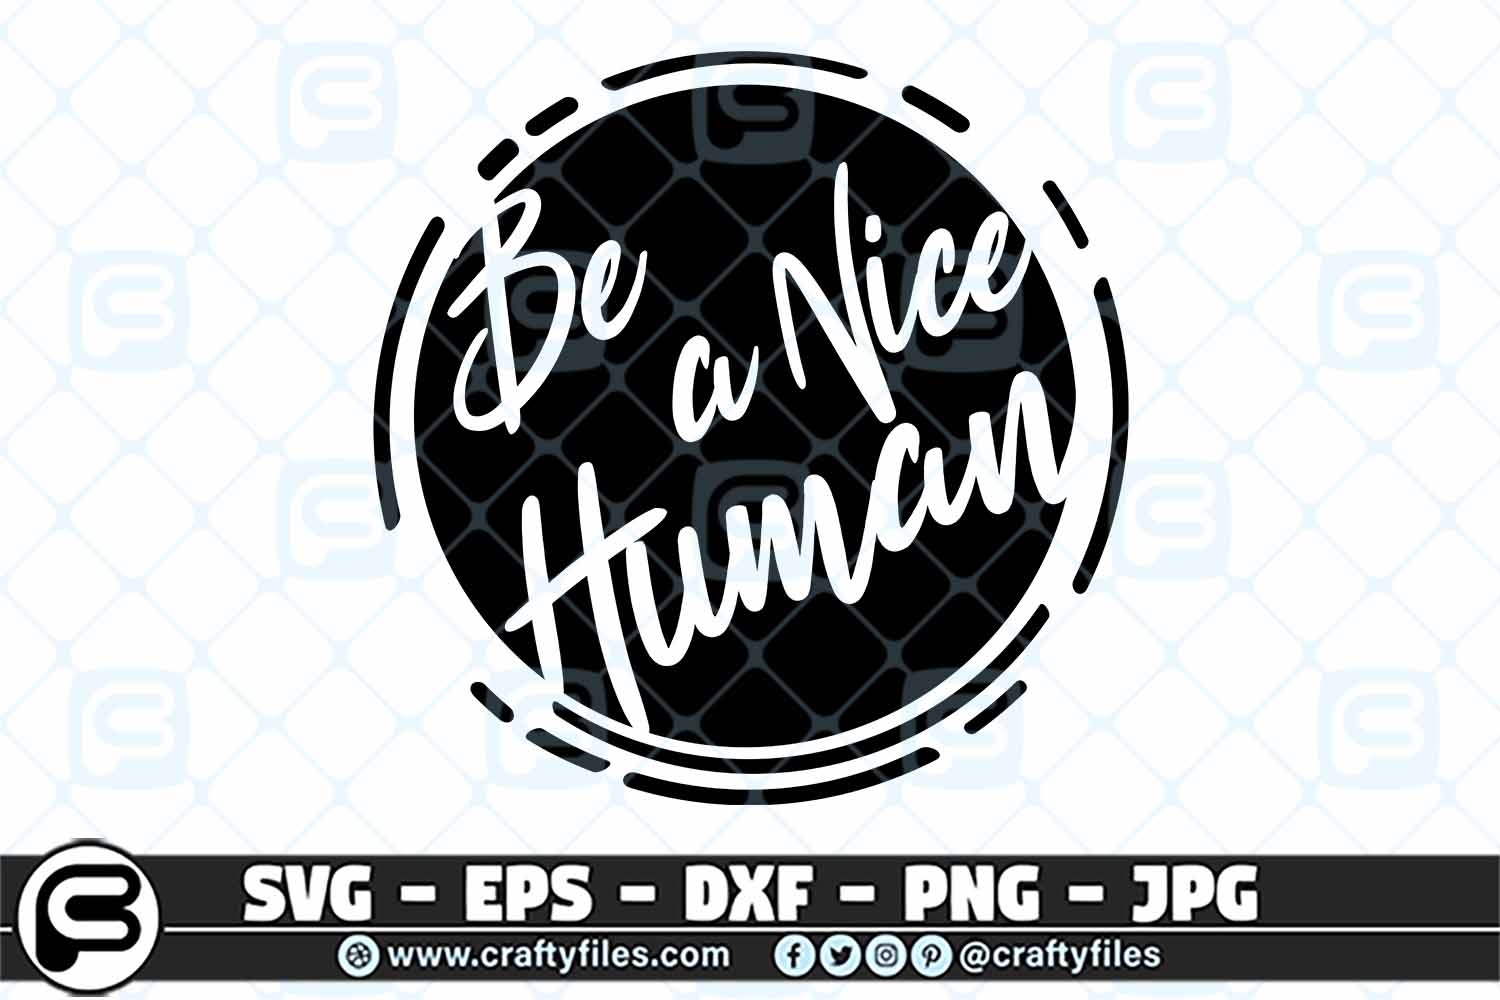 Download Free Be A Nice Human Graphic By Crafty Files Creative Fabrica for Cricut Explore, Silhouette and other cutting machines.